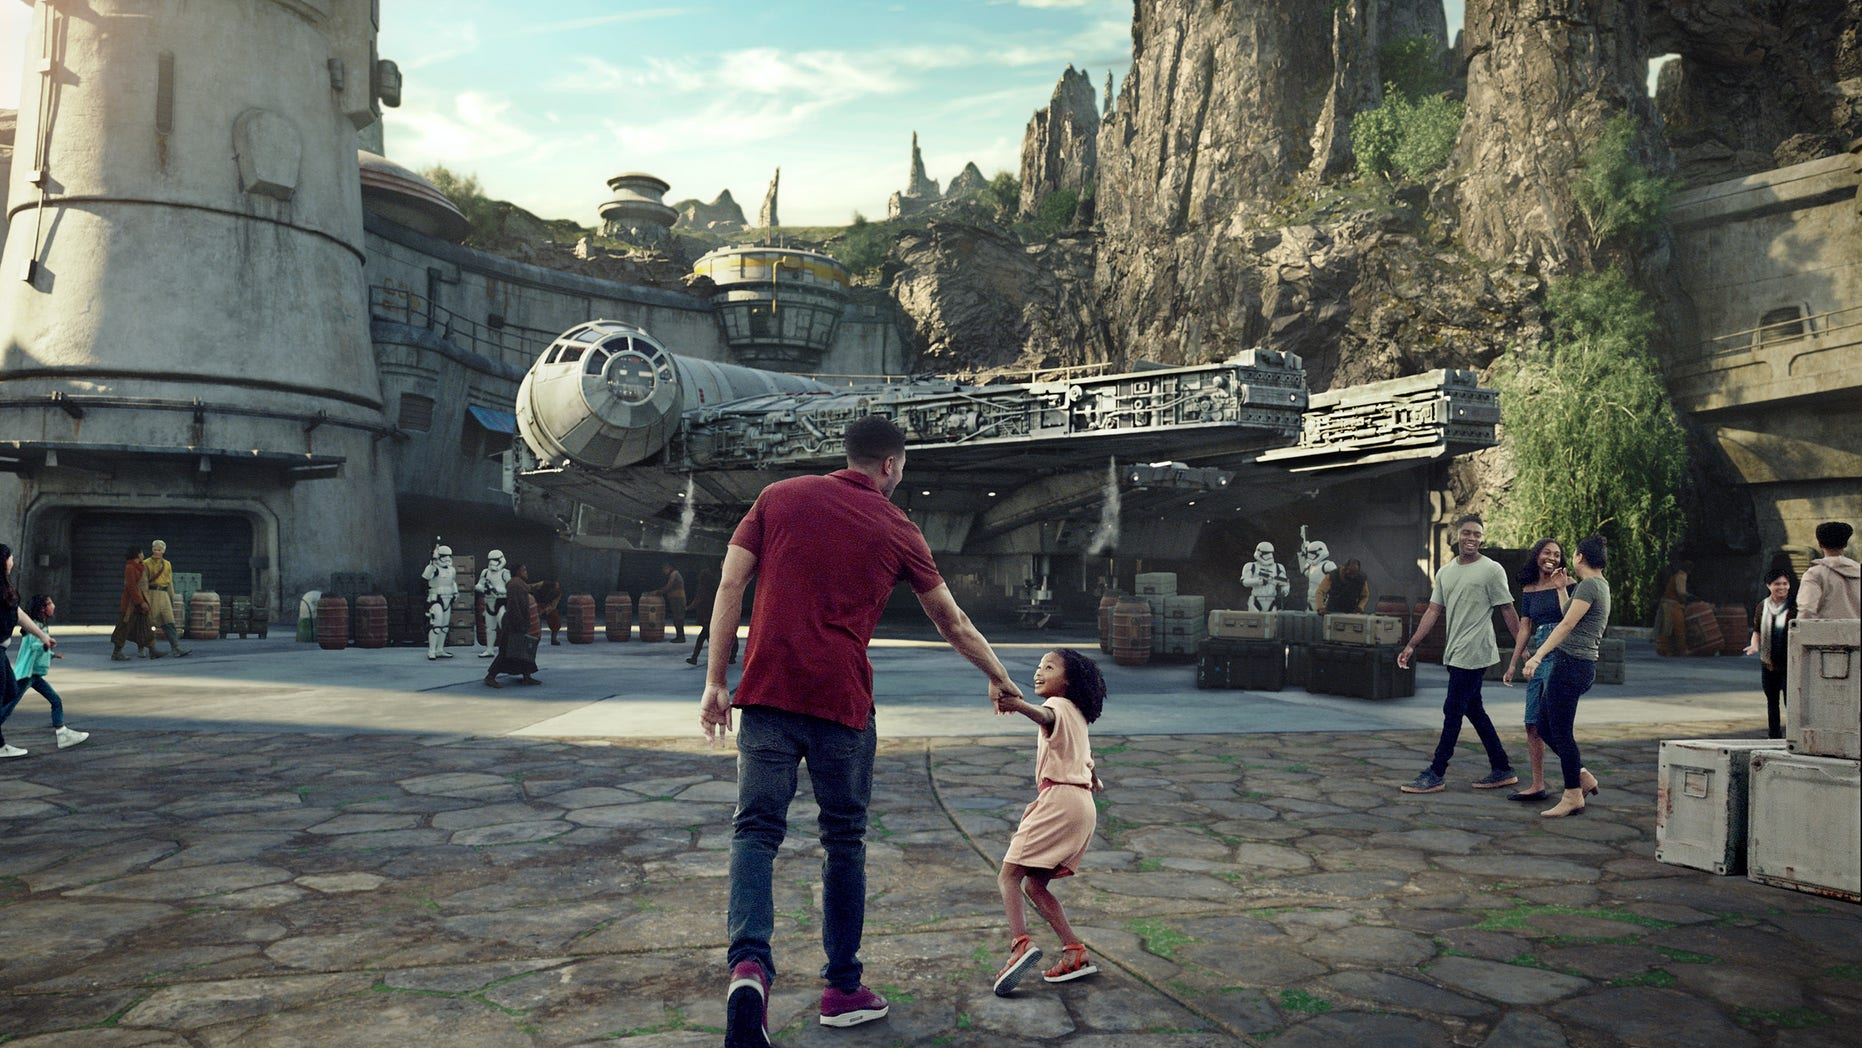 Disneyland's Star Wars Galaxy's Edge theme park to open May 31